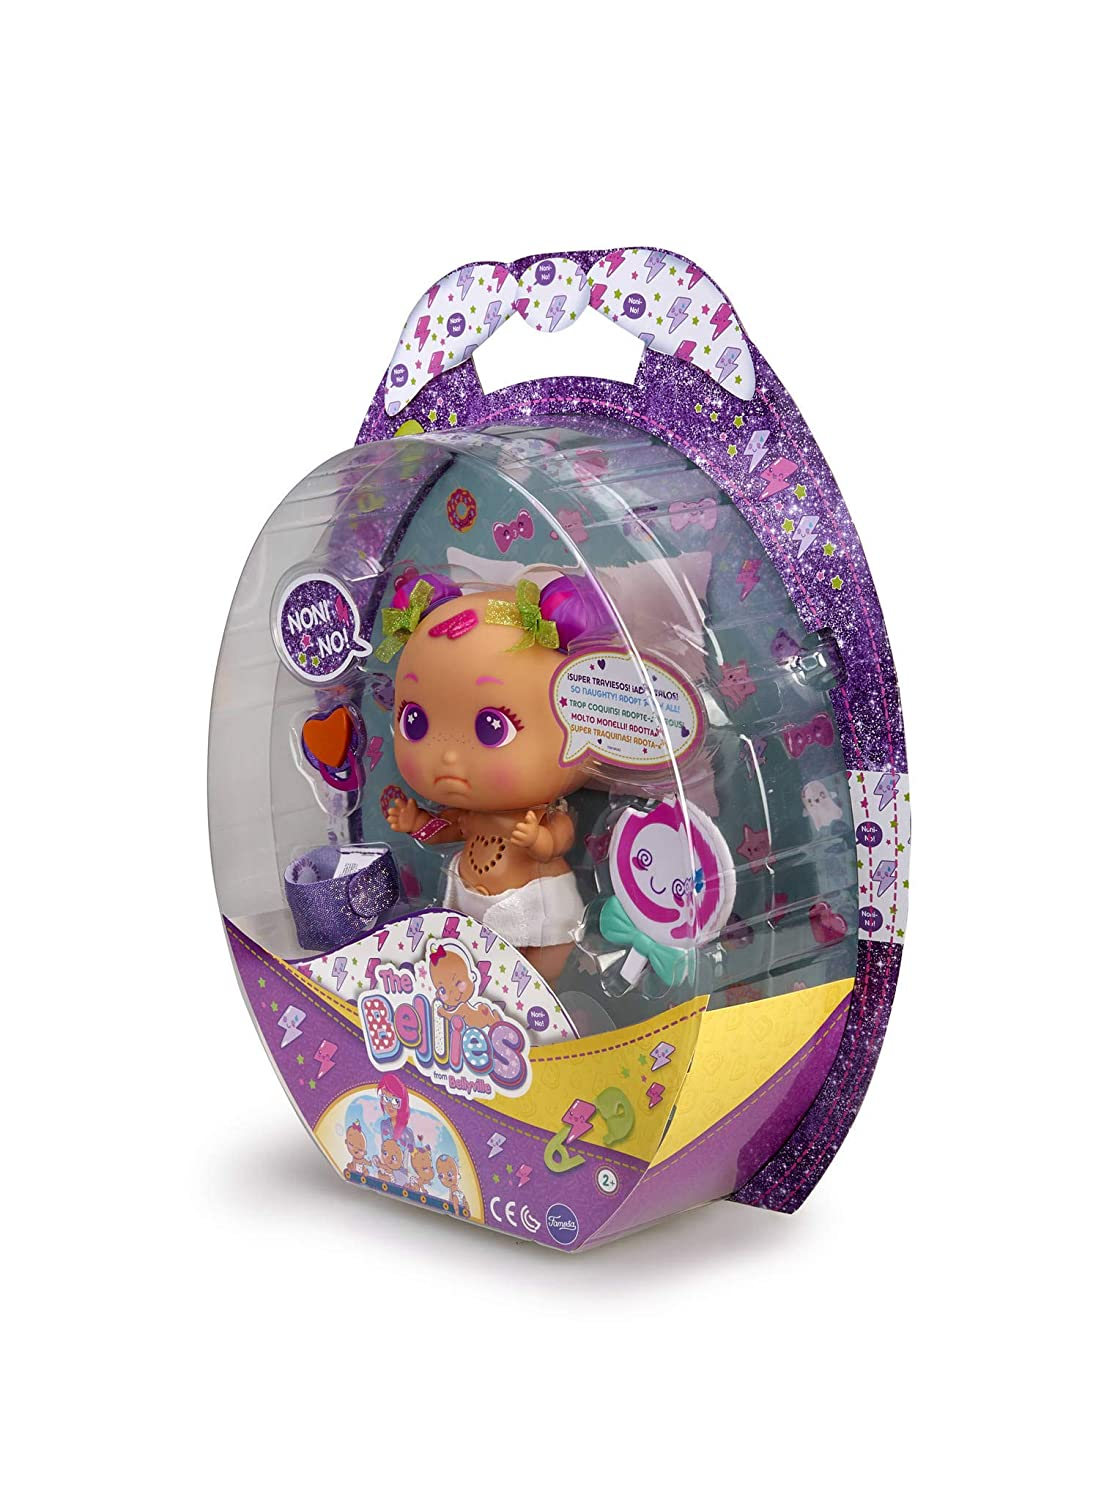 The Bellies Doll for Children and Girls Ages 3+ Famous 700015270 Noni No Multi-Colour